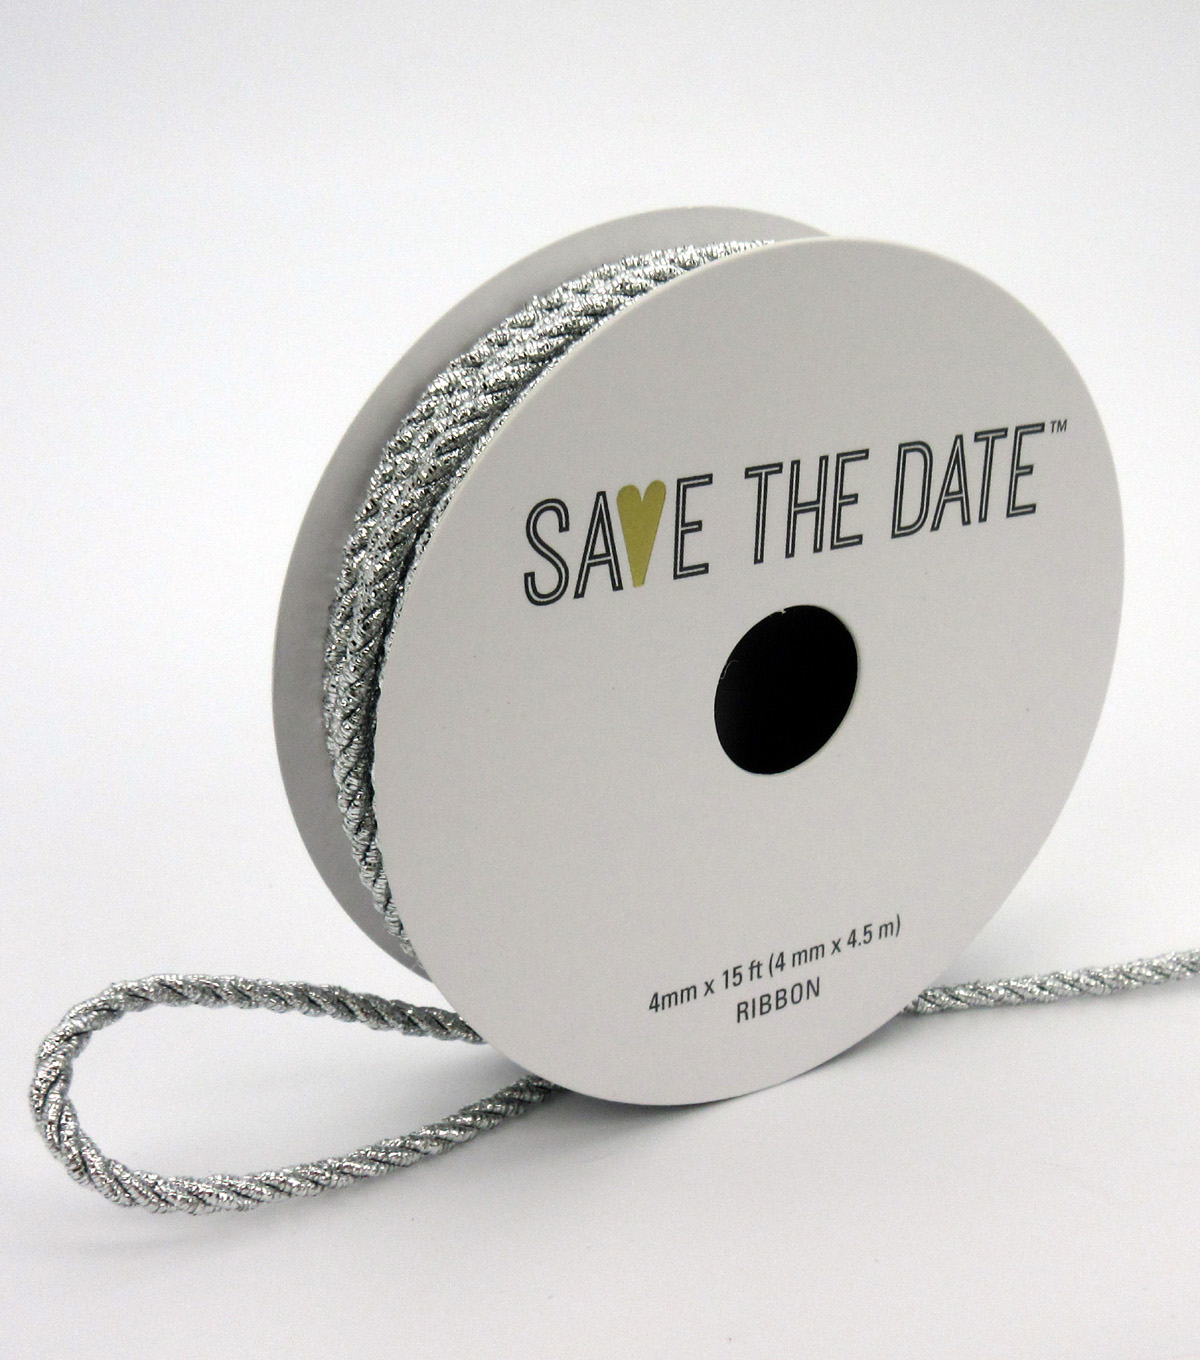 Save the Date 4mm x 15ft Cord-Silver Metallic